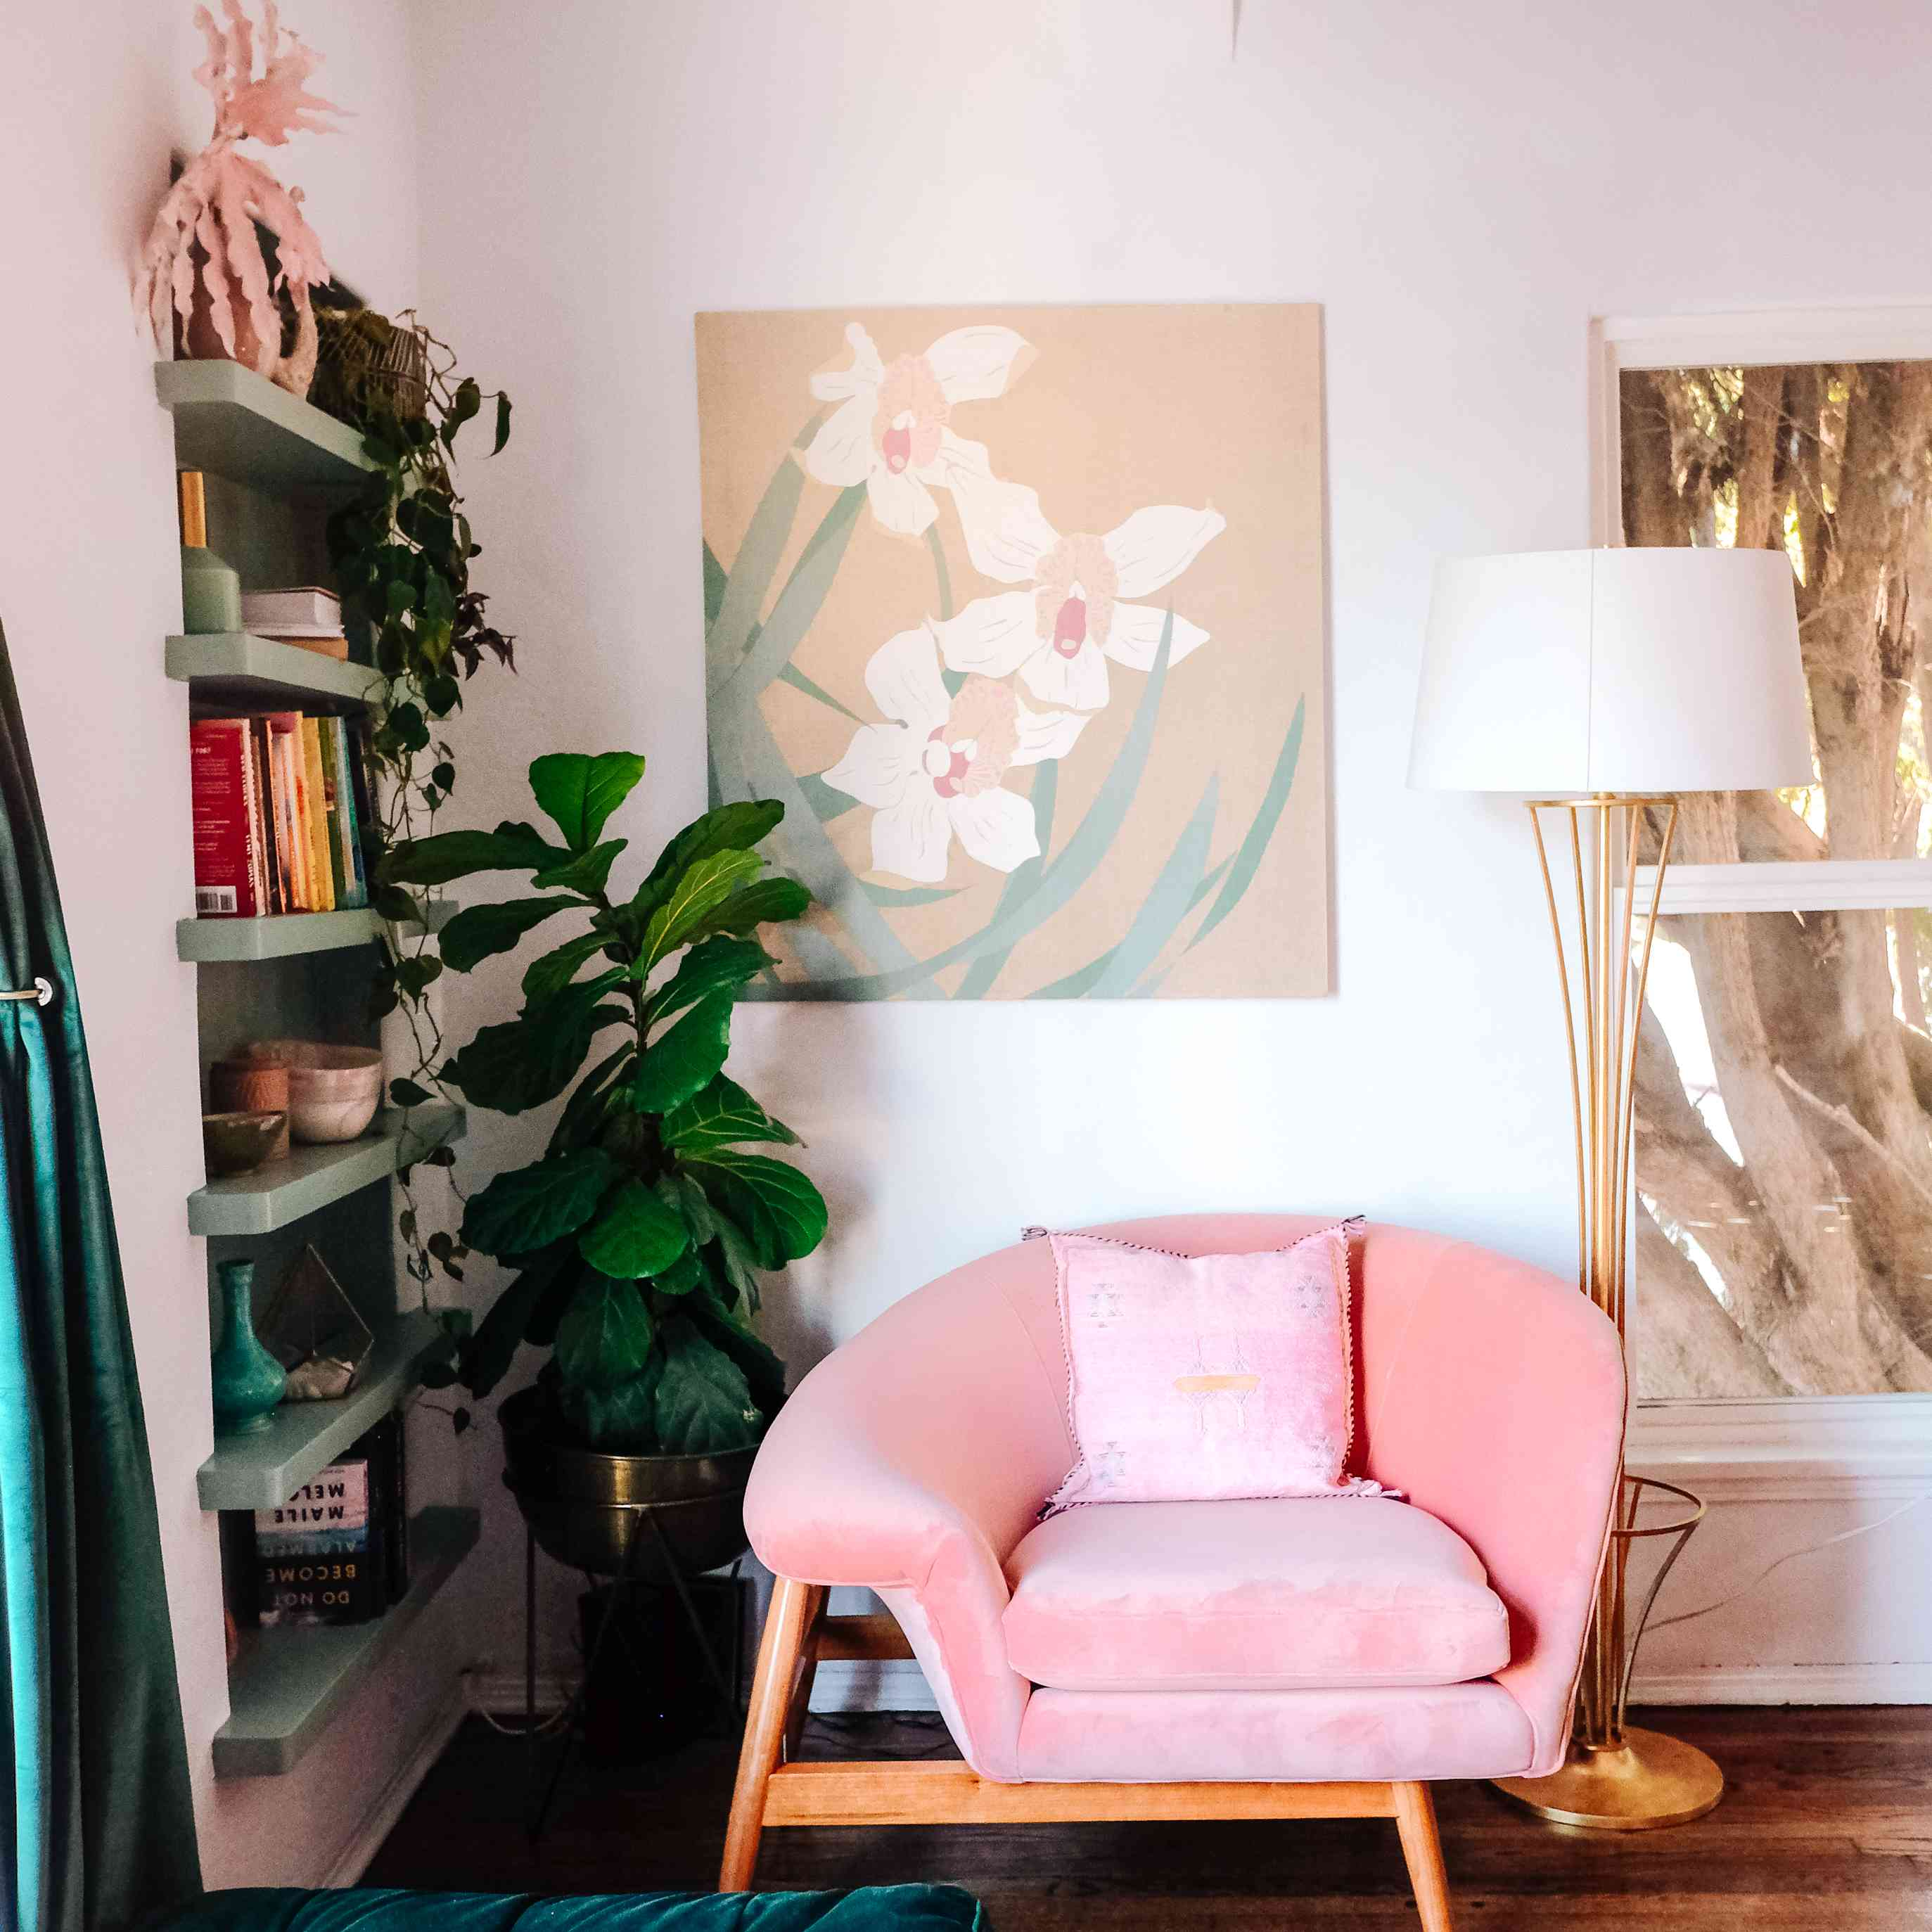 cozy reading corner with pink chair, floating bookshelf built into wall, artwork and plant